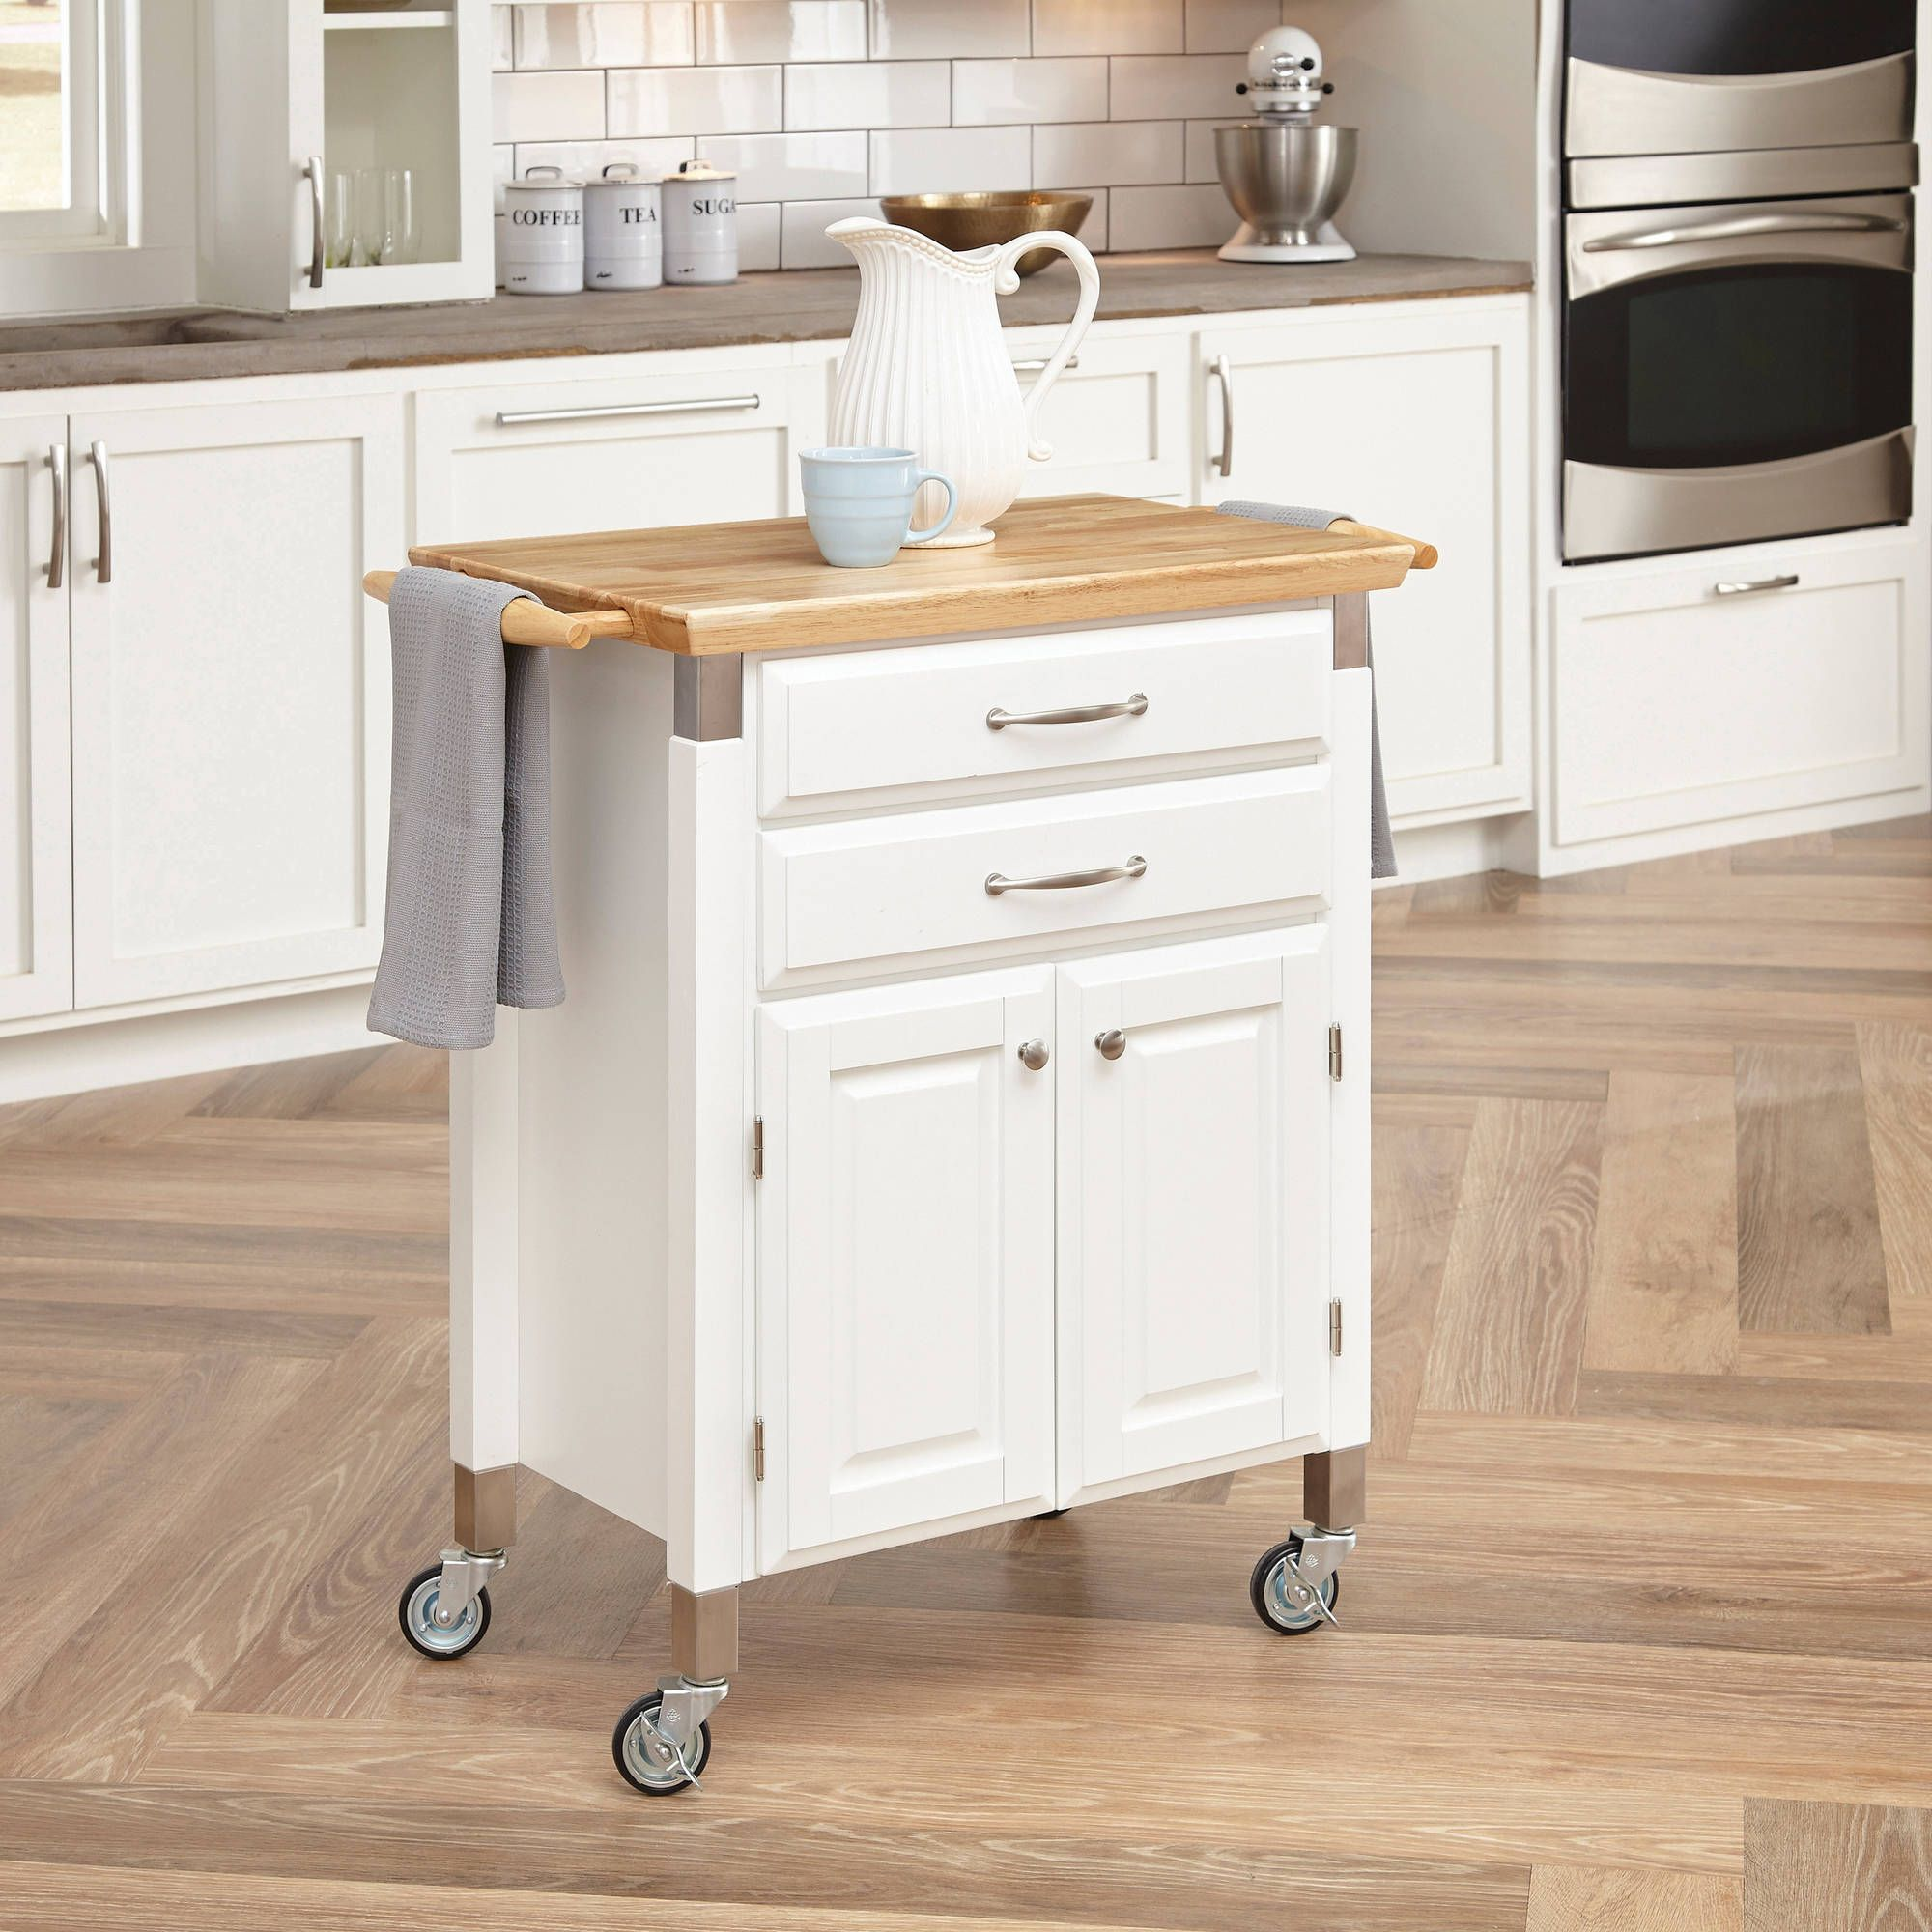 Dolly Madison Prep and Serve Kitchen Cart, White | Moving On: Small ...